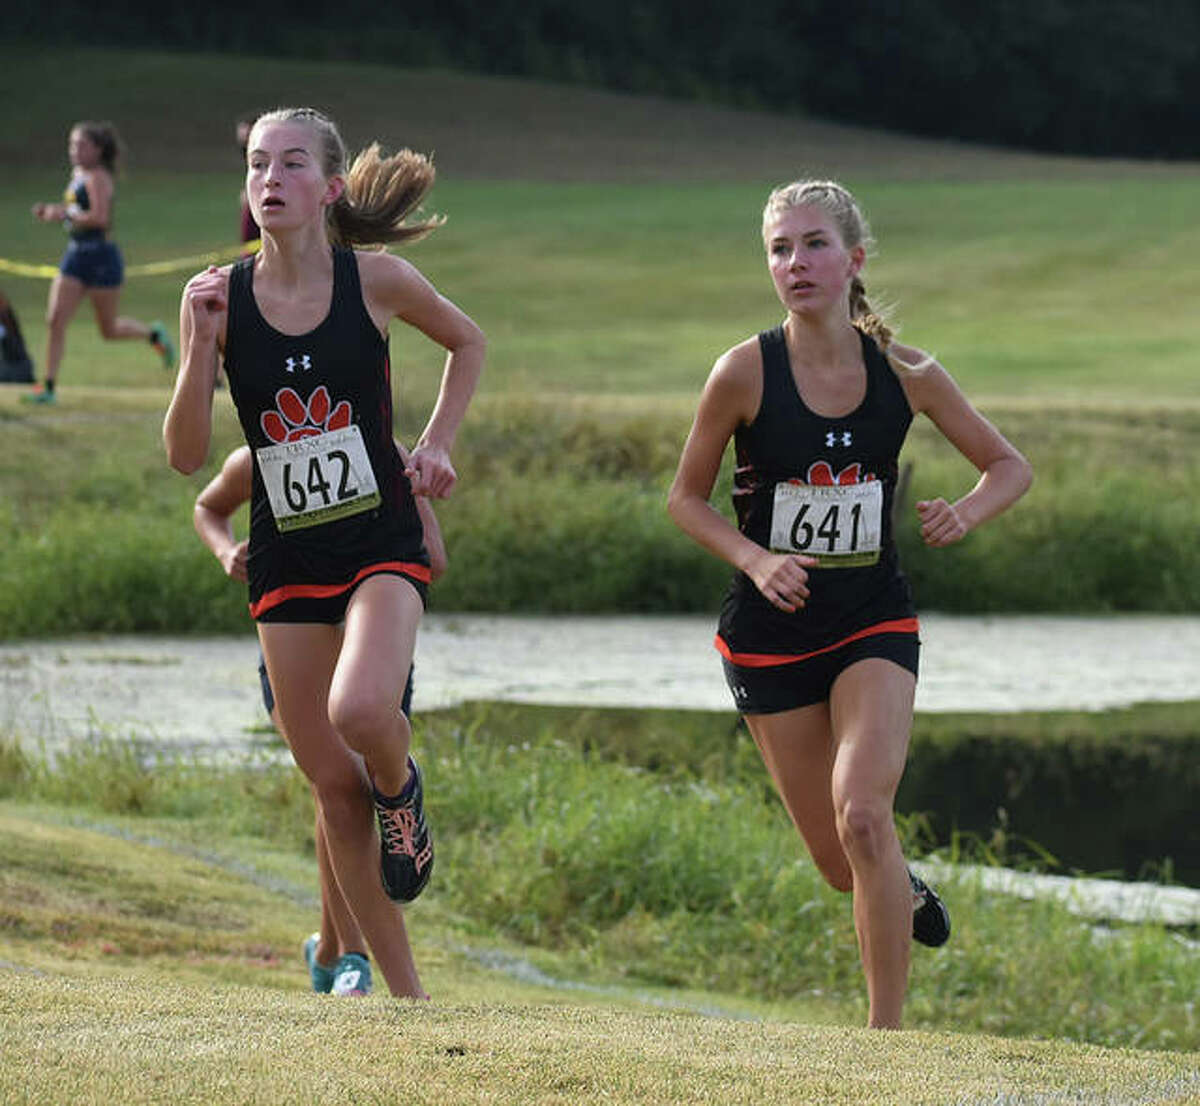 Edwardsville's Maya, right, and Makenna Lueking run in the Southwestern Conference Meet at Clinton Hills in Swansea.